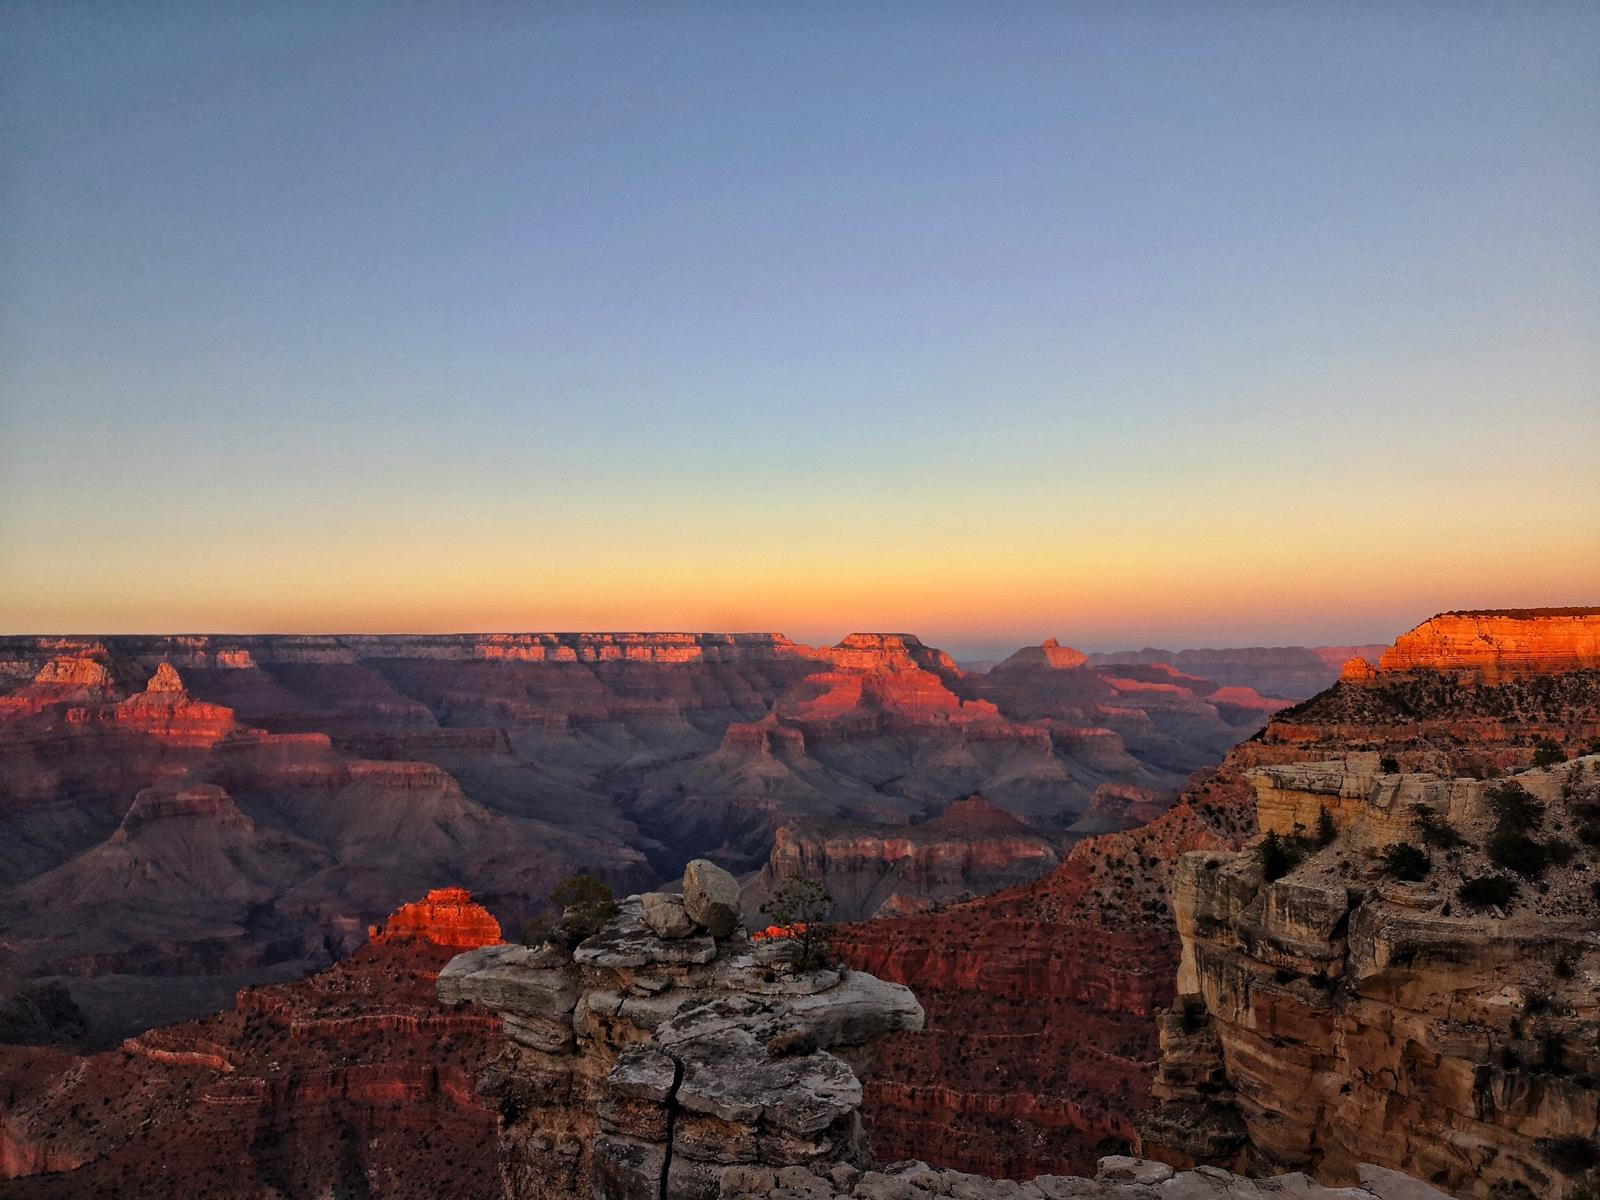 Grand Canyon at dawn, illustrating one of our nature photography tips.